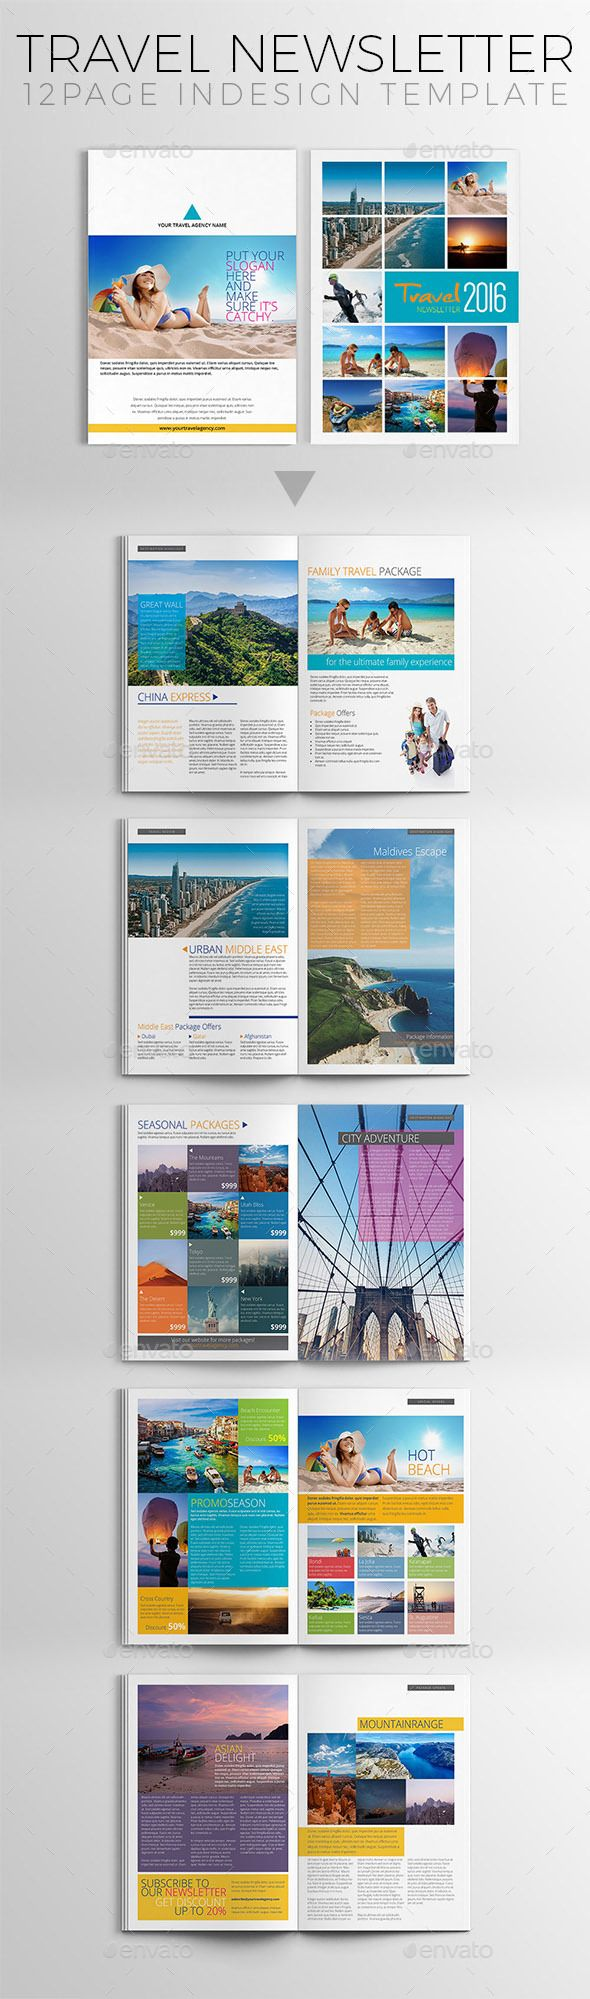 Travel Newsletter Template - #Newsletters Print #Templates Download here: https://graphicriver.net/item/travel-newsletter-template/18608068?ref=alena994